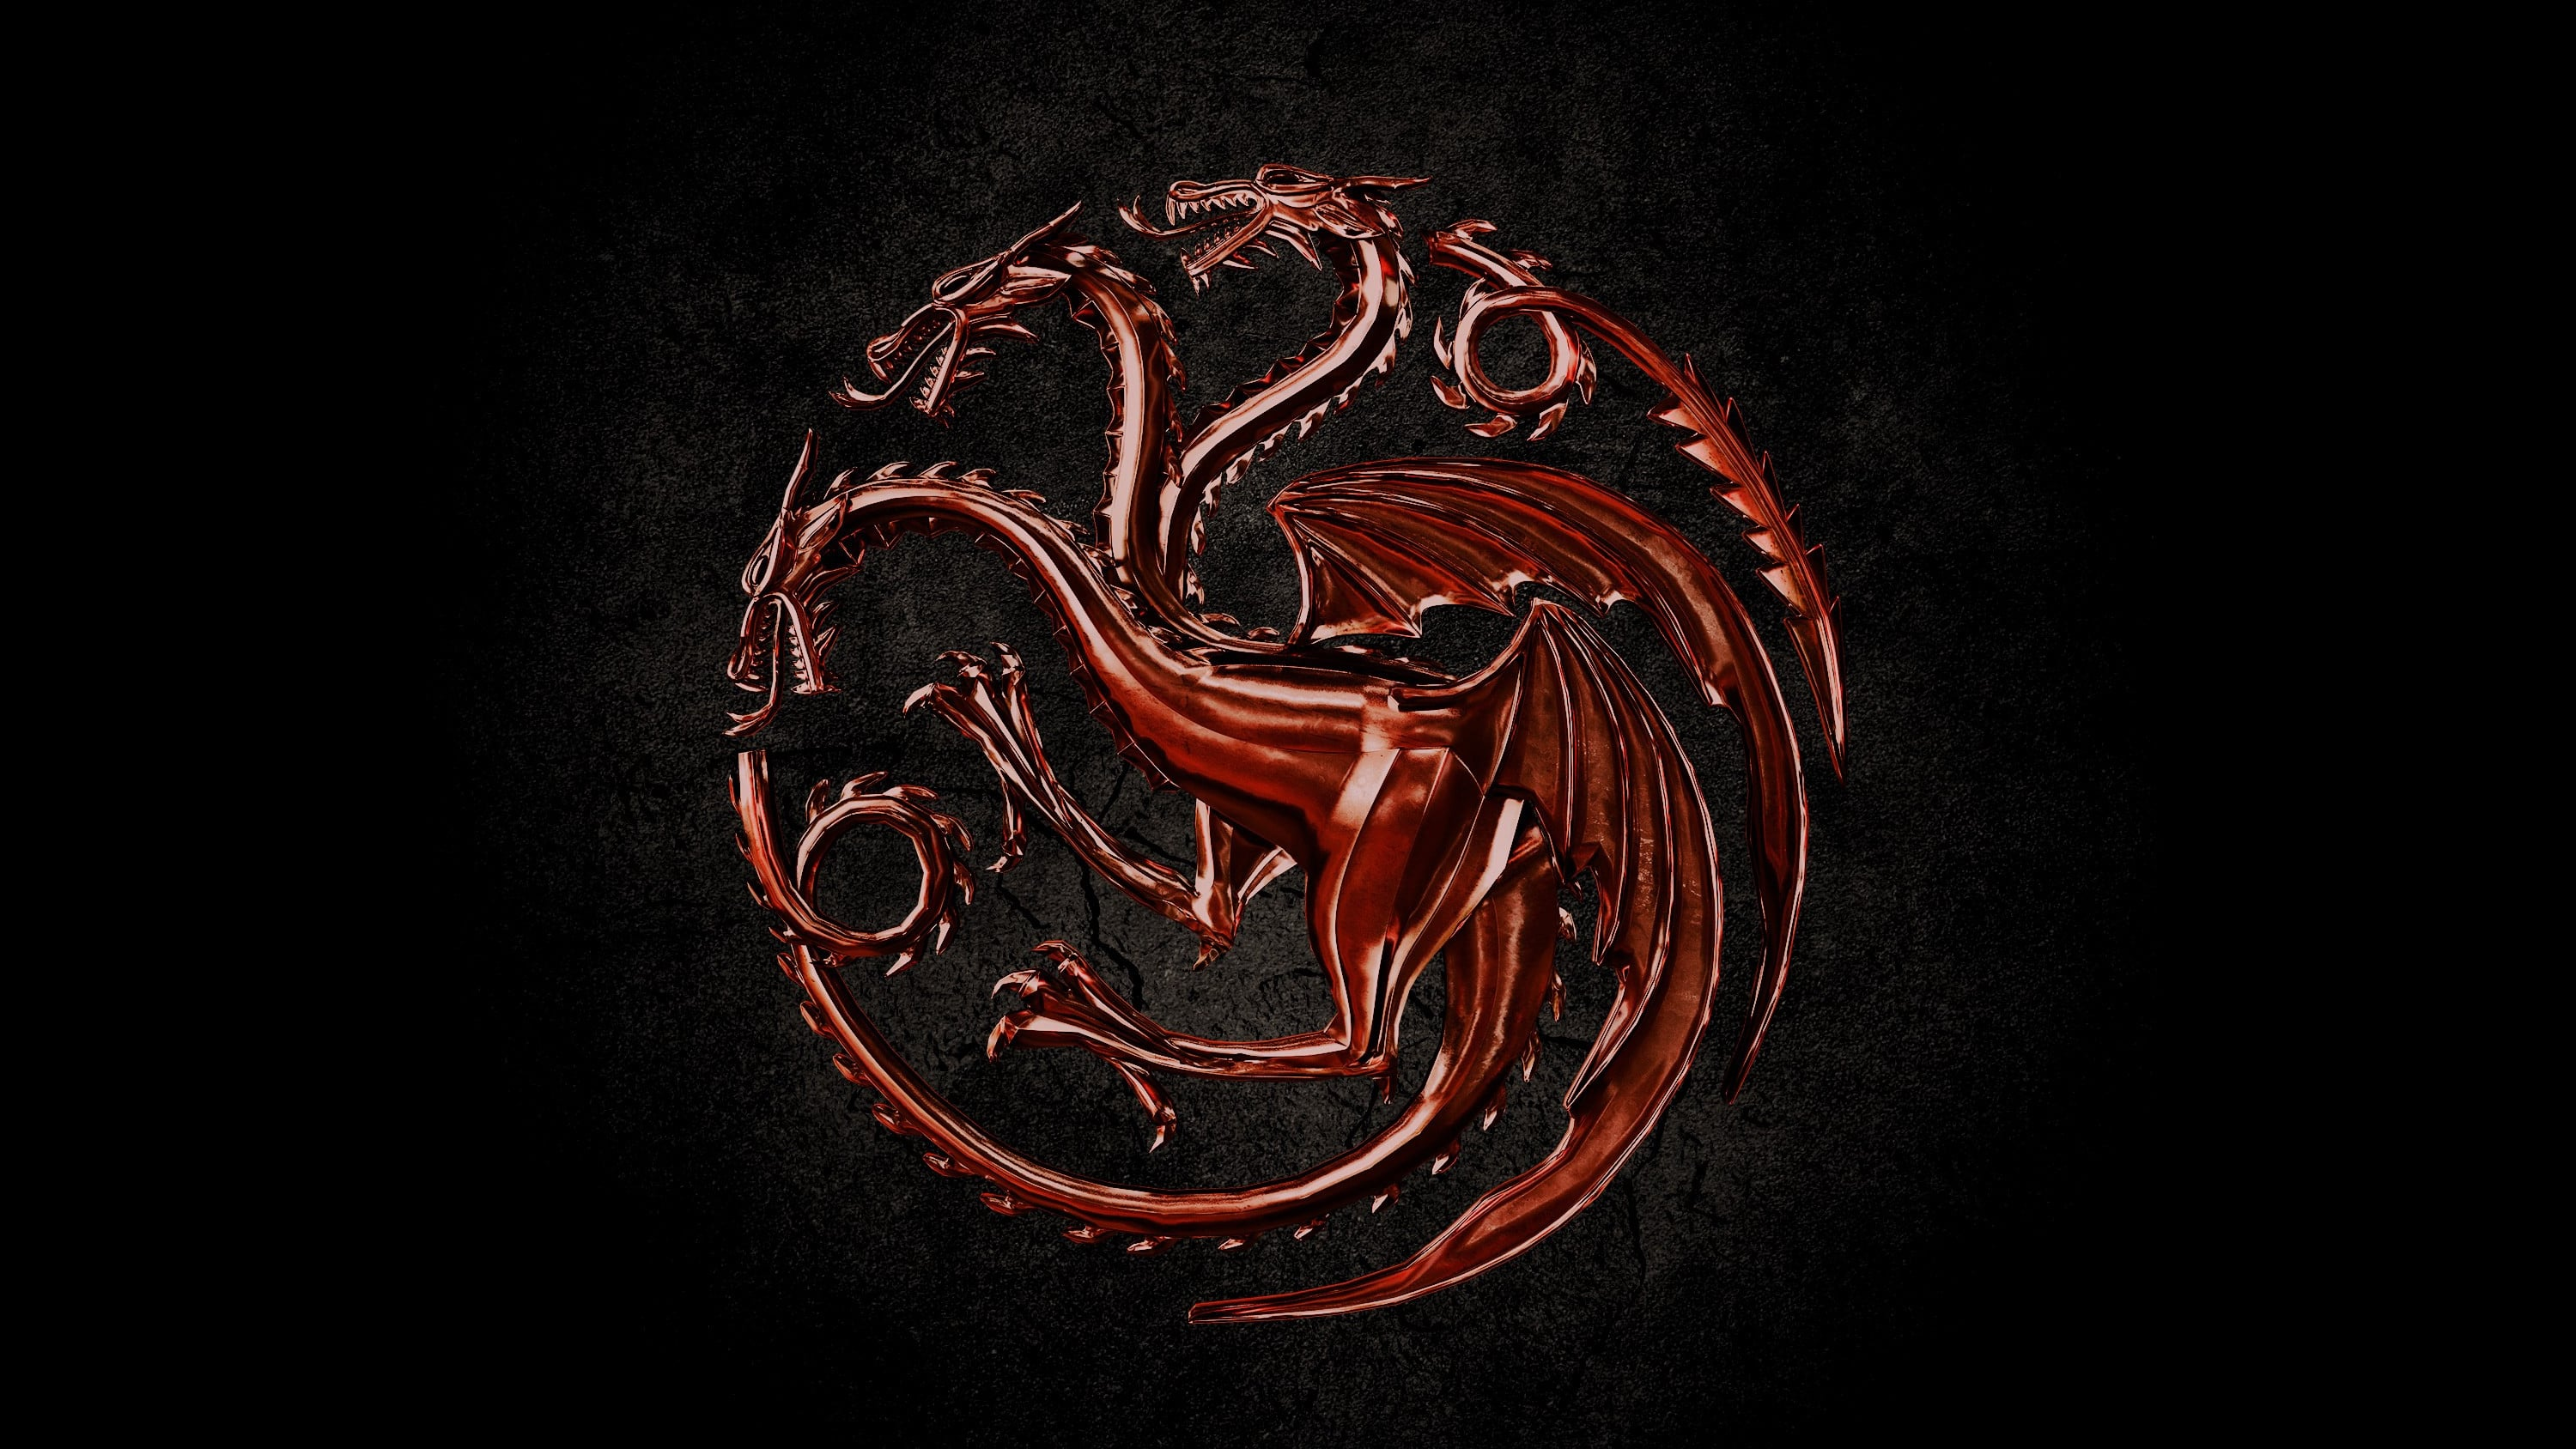 More cast members revealed for House of the Dragon